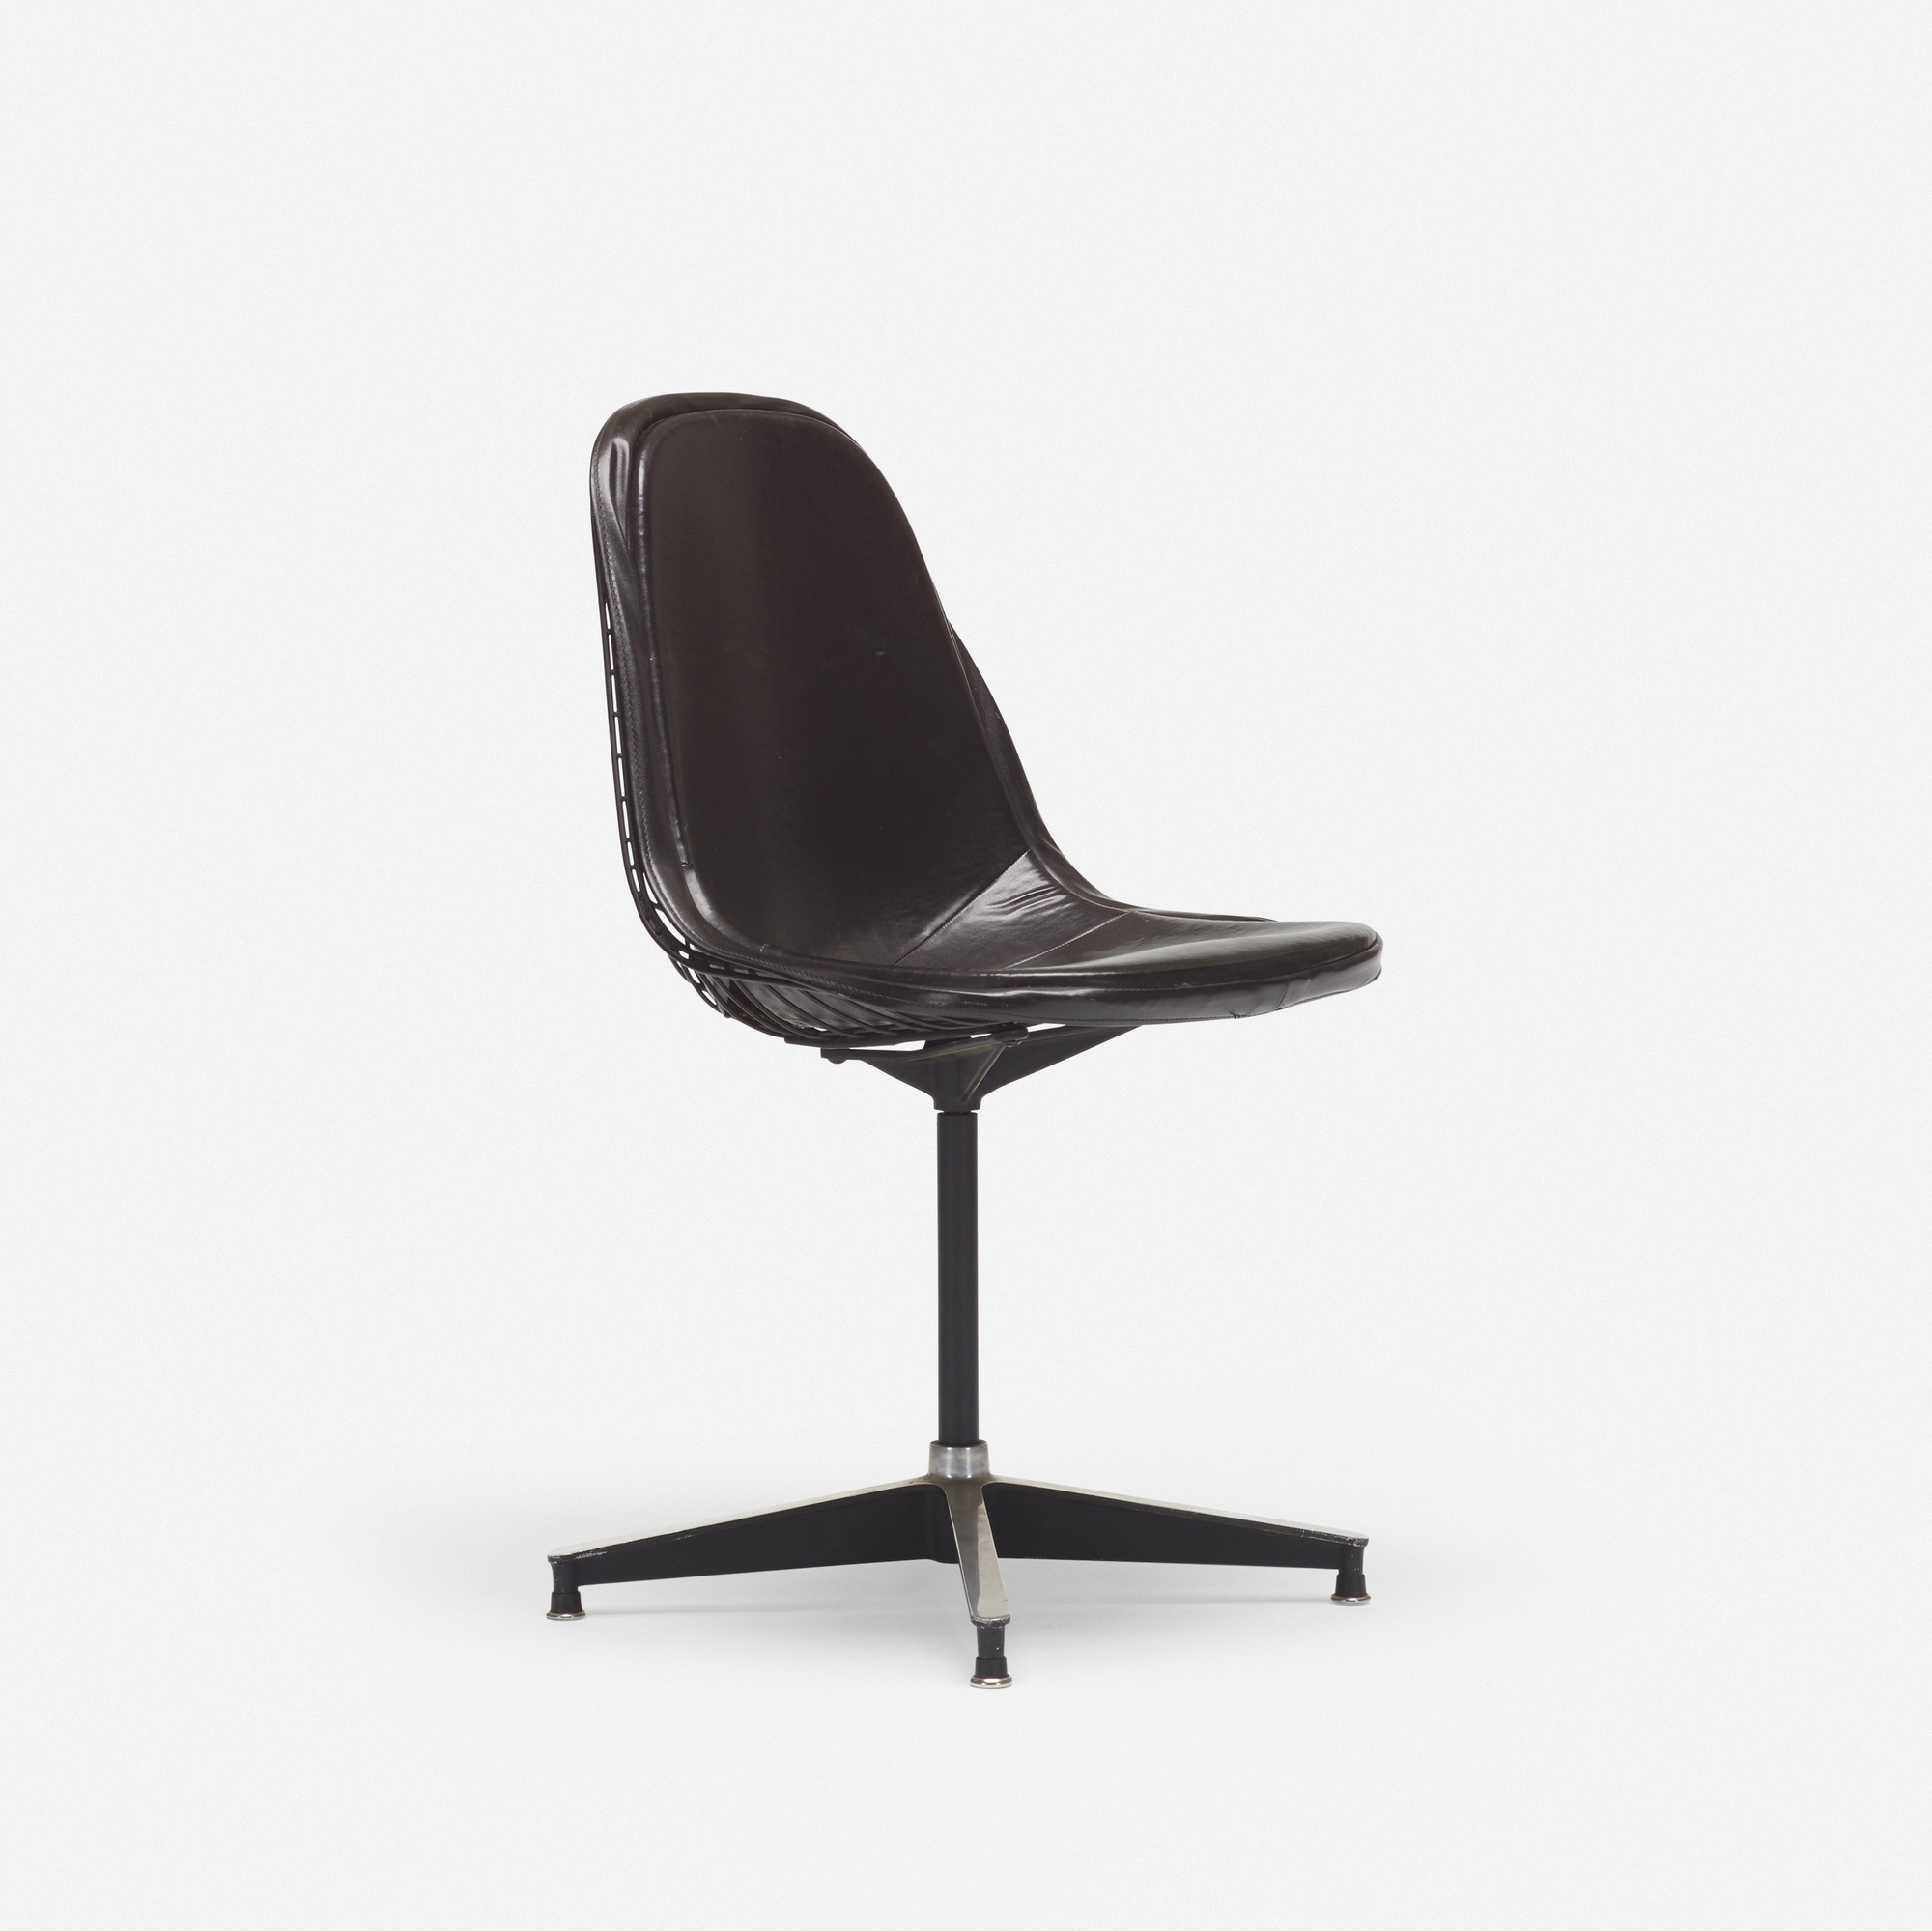 266: Charles and Ray Eames / PKC-1 (2 of 2)